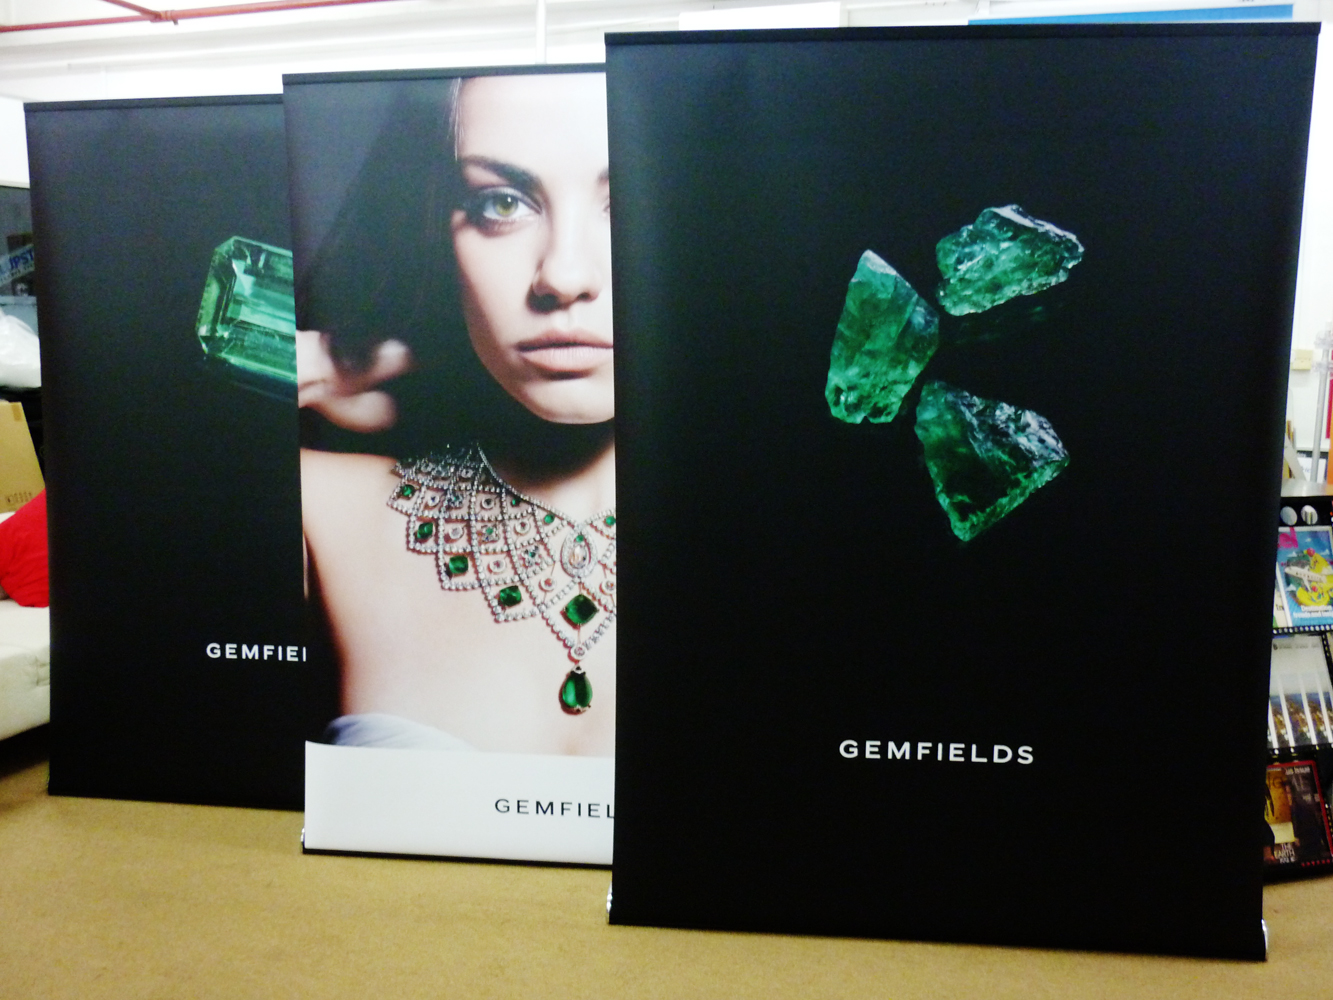 Deluxe150 Pull Up Banner Stands for Gemfields